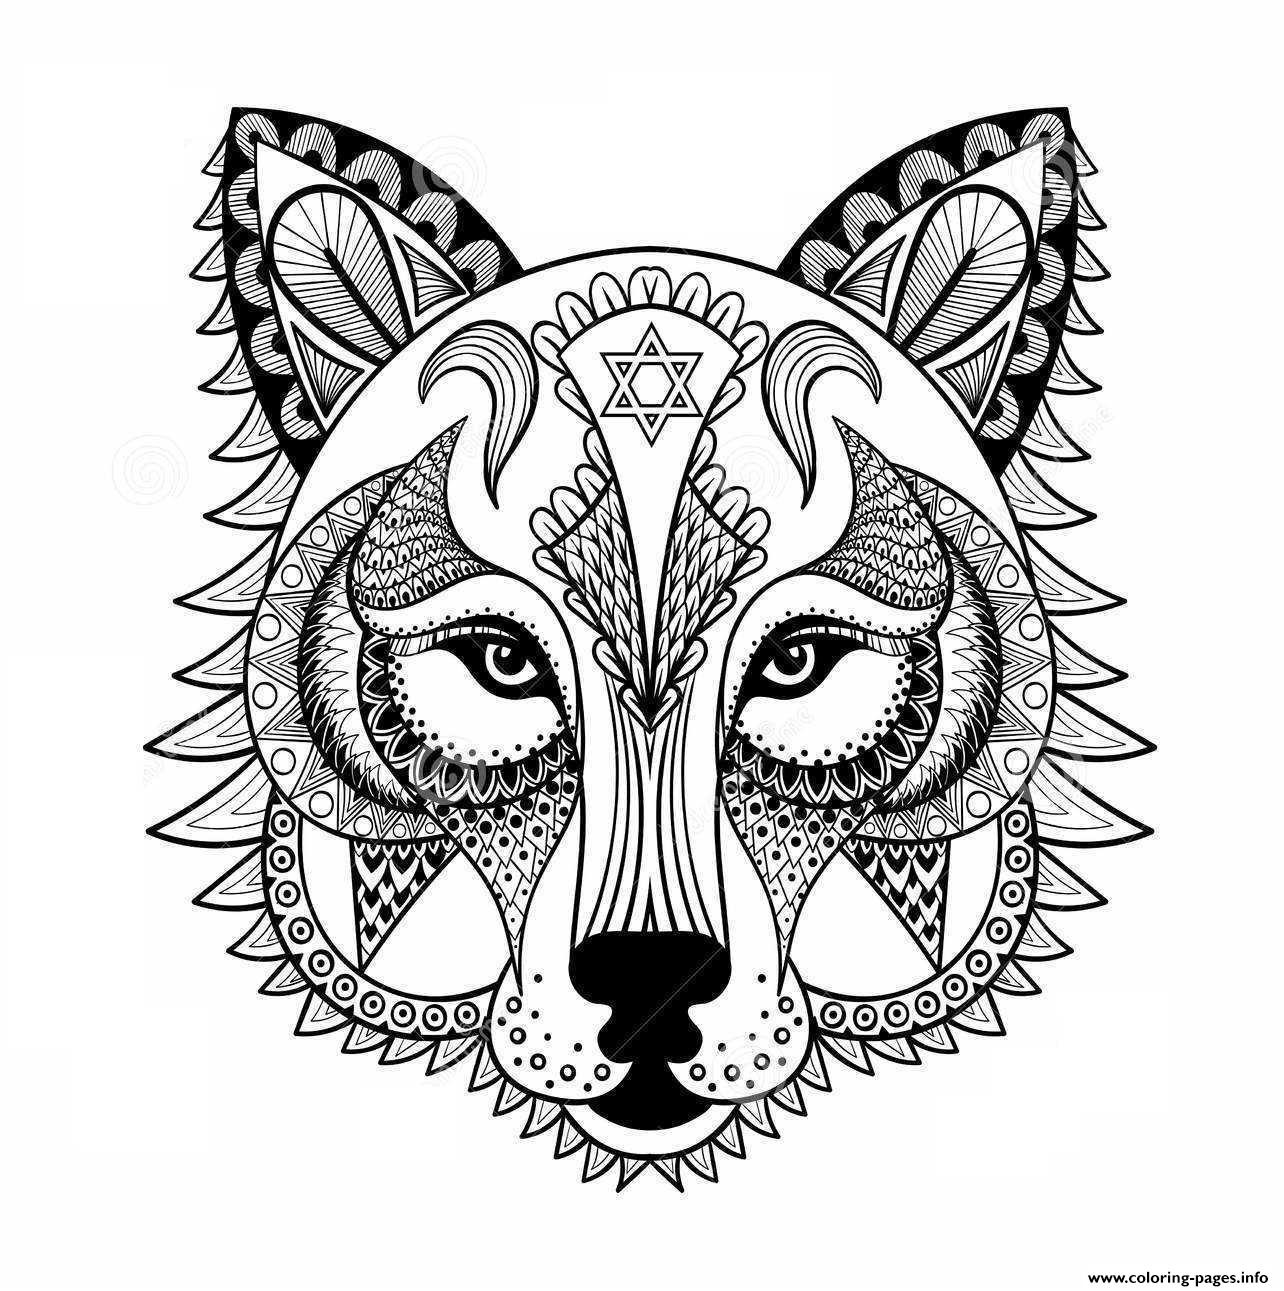 1284x1291 Wolf For Adult Anti Stress Coloring Pages Printable Endear Page